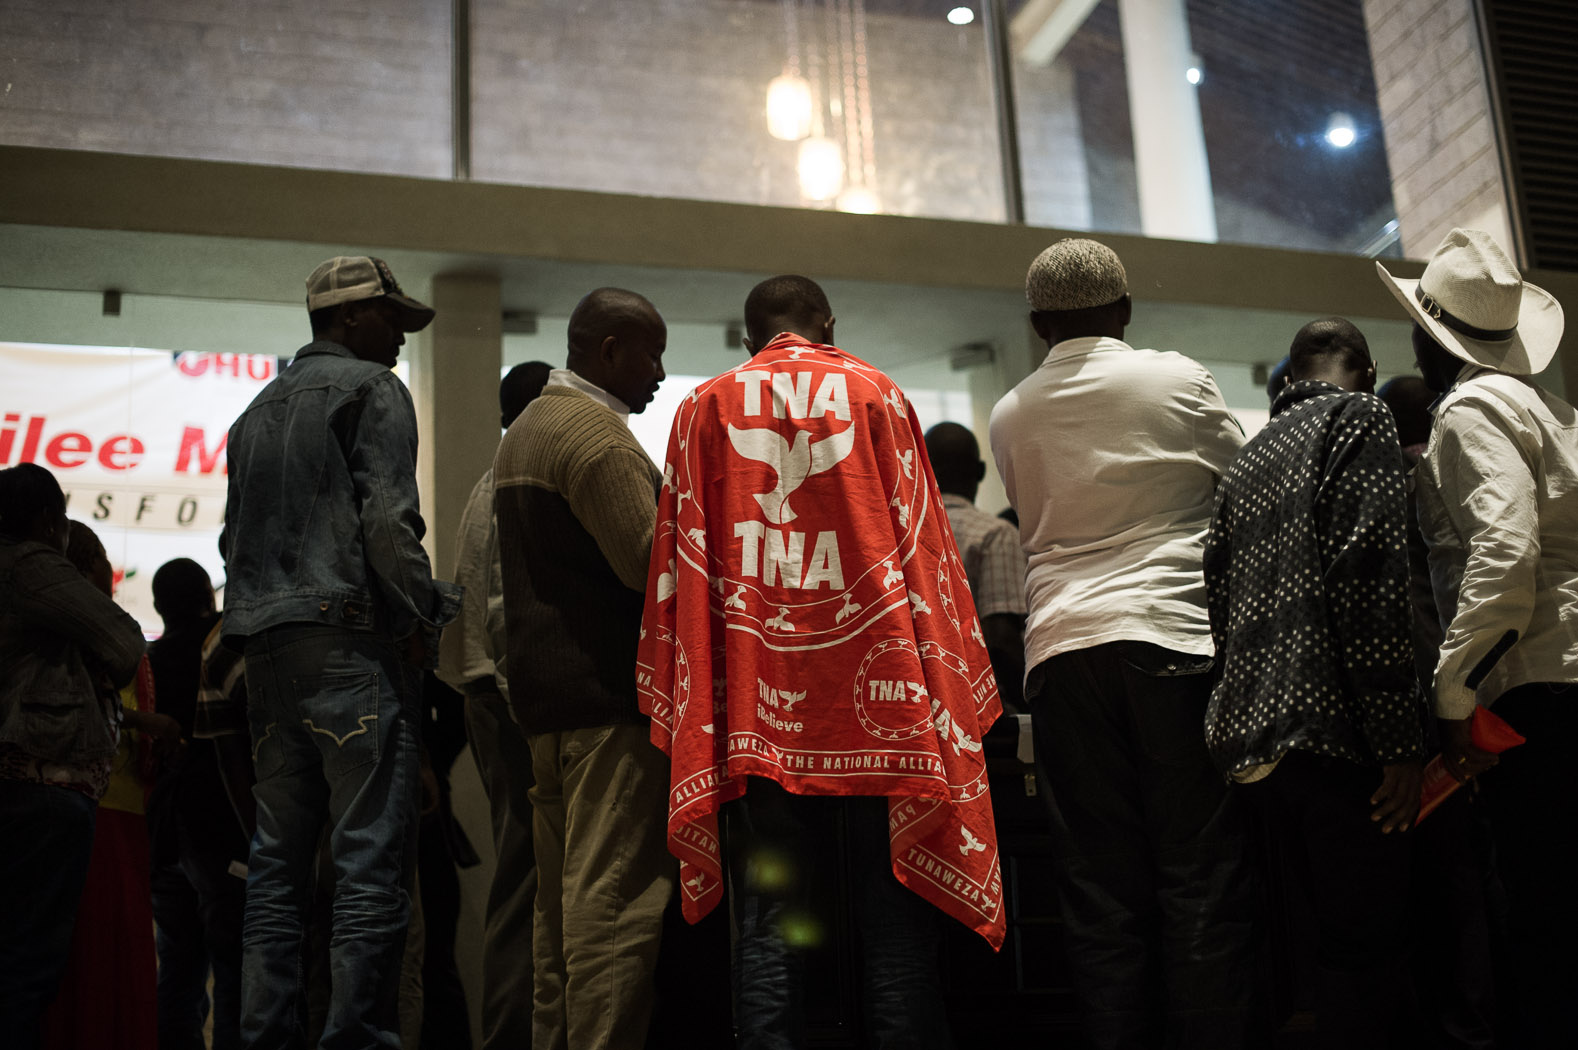 By the Friday night, four days after vote day, the majority of results had been announced, and it seemed likely that Uhuru Kenyatta would win an outright majority, forgoing the need for a second-round run-off. His supporters began congregating at the Jubilee headquarters, to which his party, The National Alliance (TNA) was part.